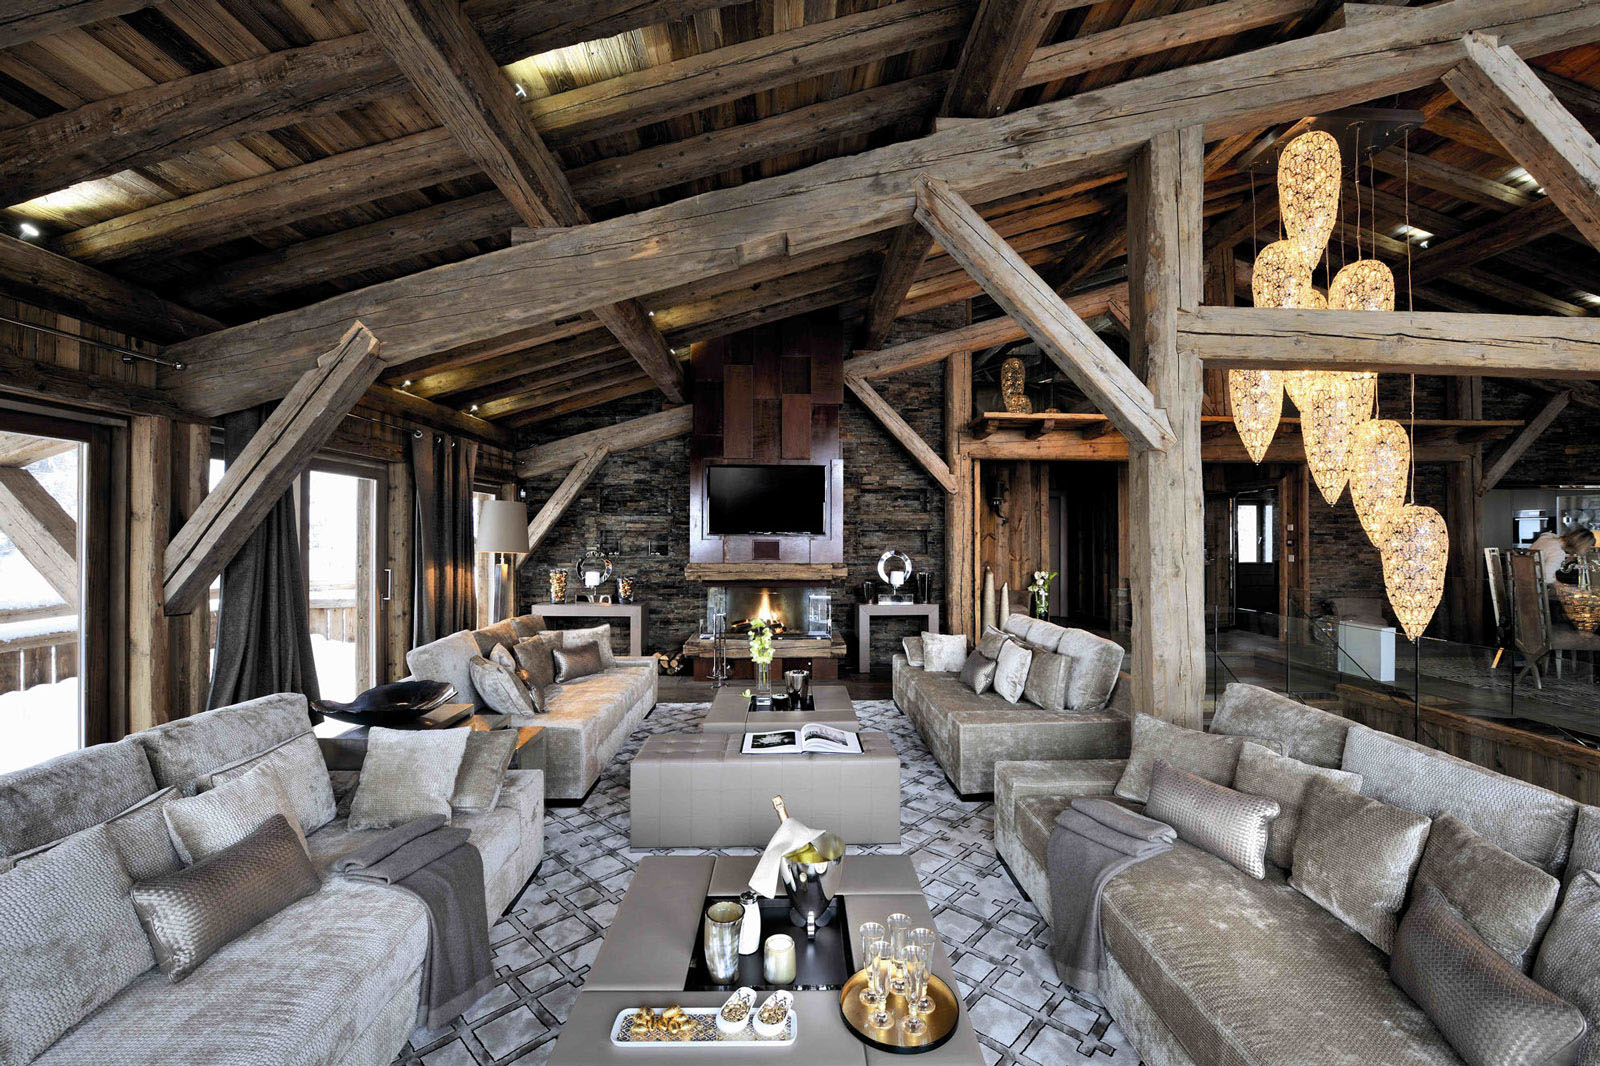 Chic modern rustic chalet in the rh ne alpes idesignarch - Interieur chalet montagne photo ...